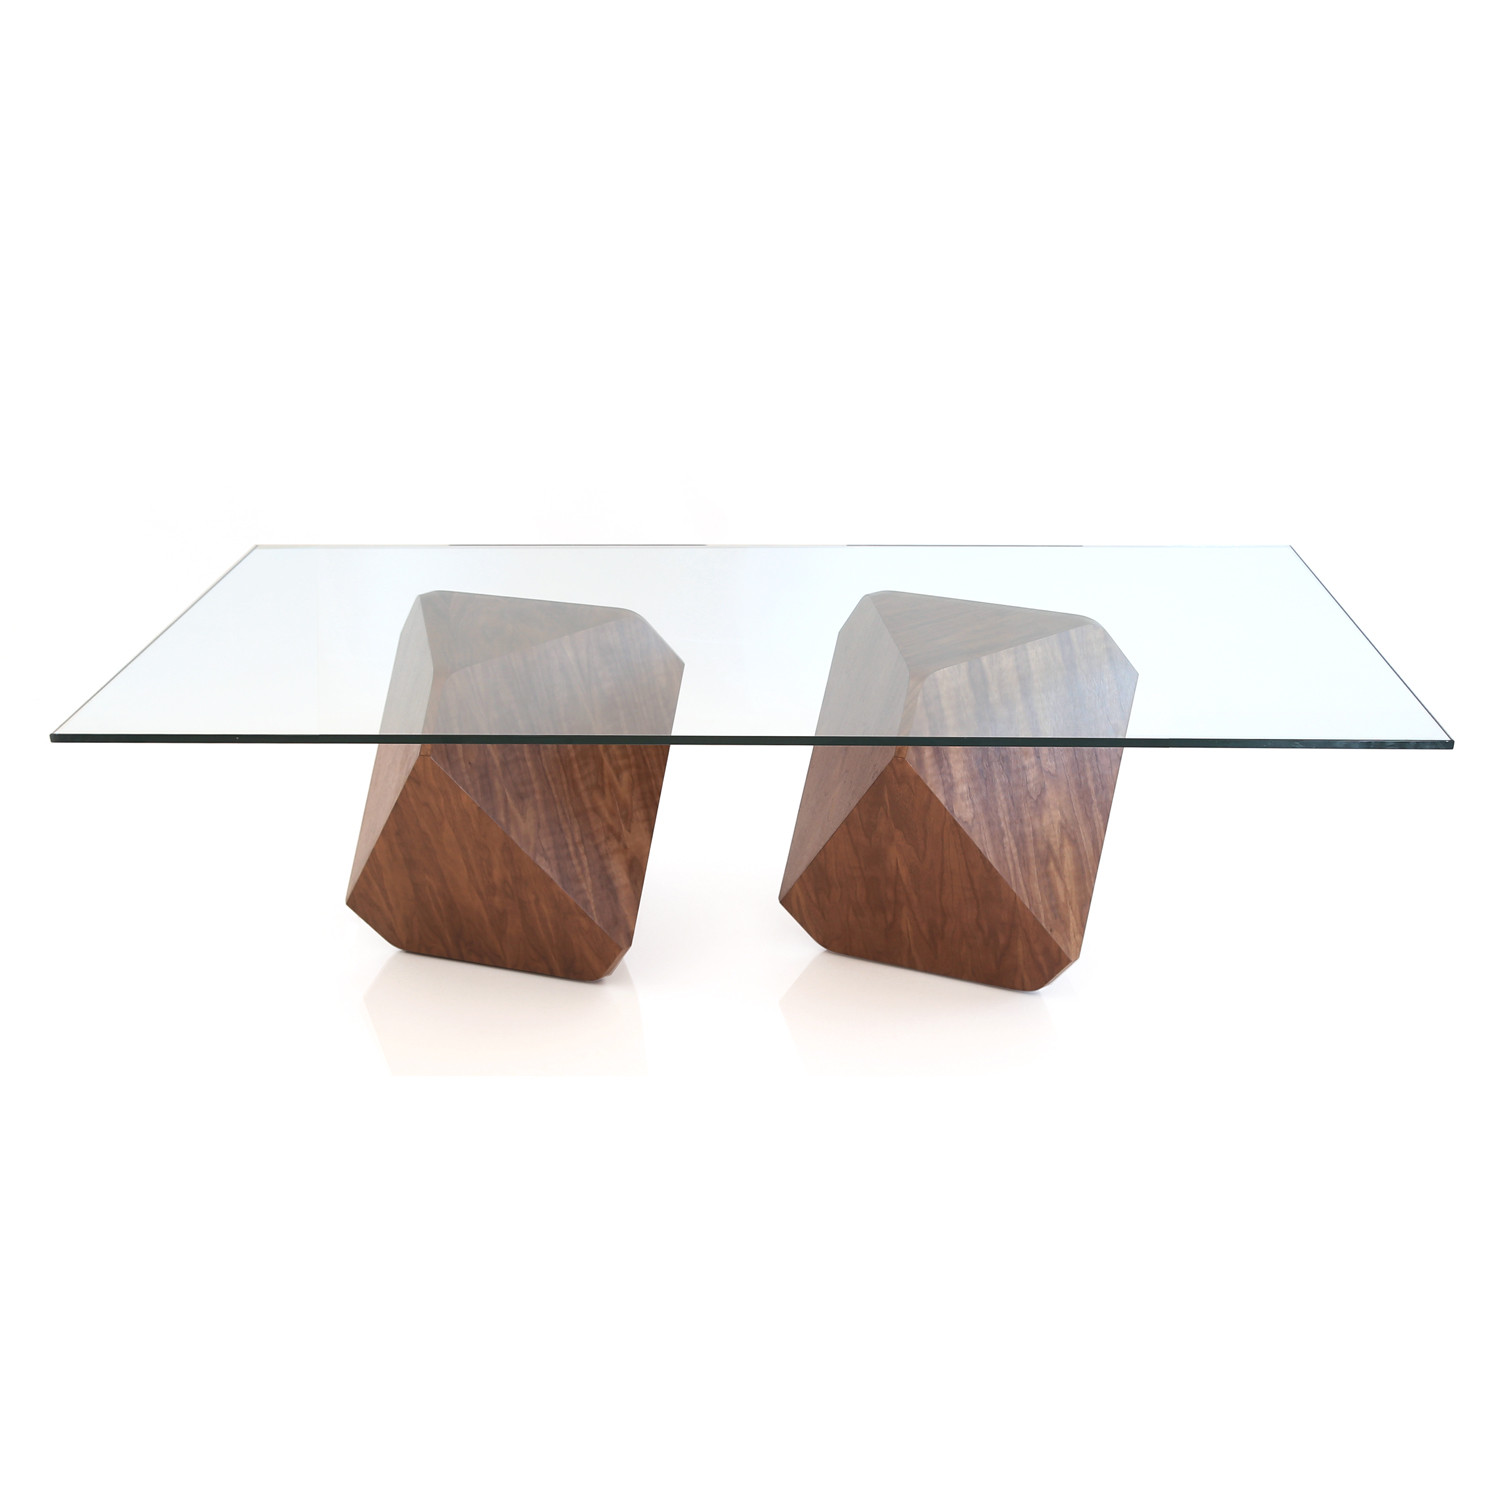 Hal Slender Dining Table Grey Walnut With Glass Top William - Slender dining table